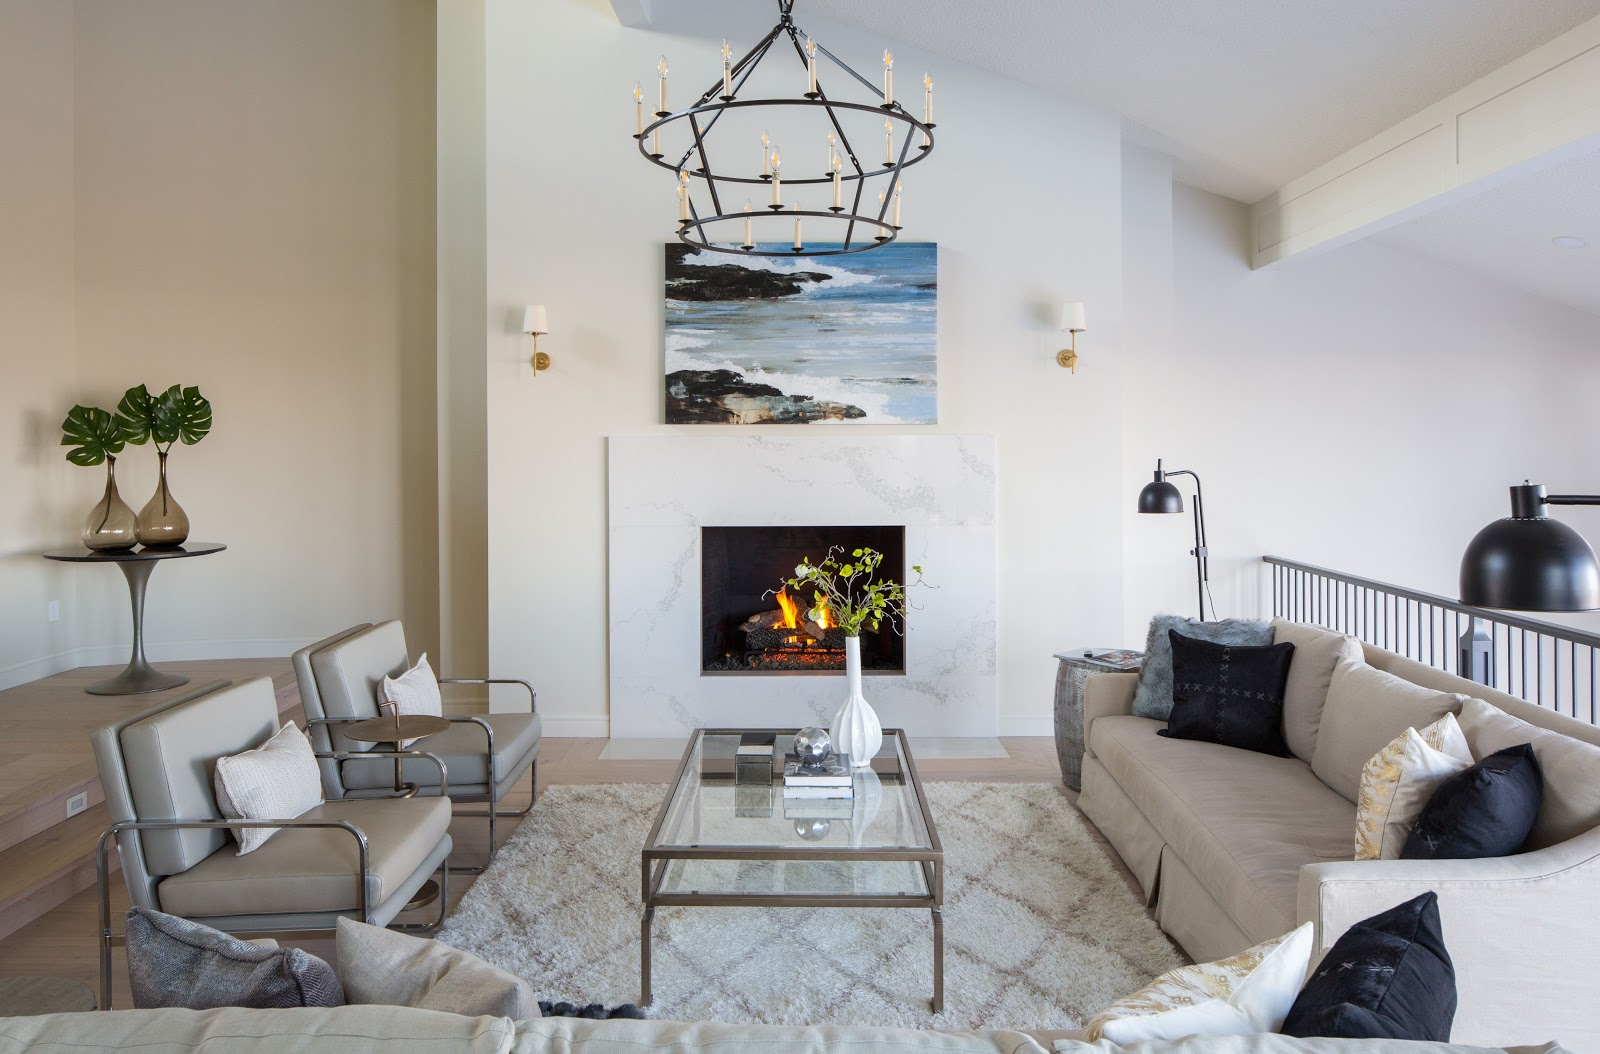 NW Calgary modern traditional living room, caesarstone quartz fireplace, soft patterned rug, chandelier